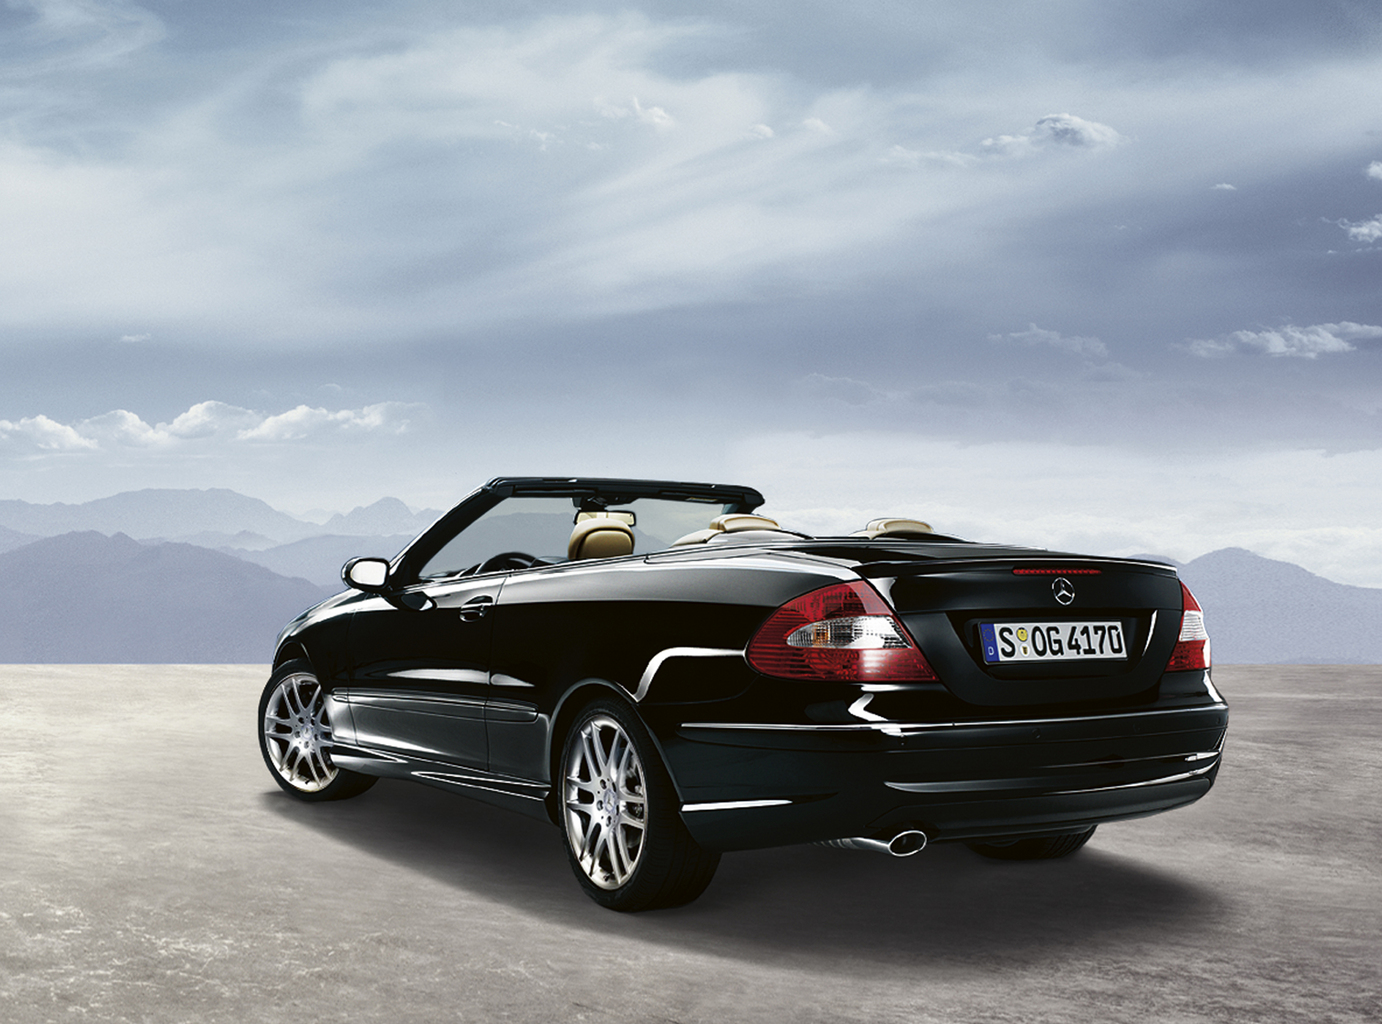 Mercedes CLK Cabrio Auto Wallpapers GroenLicht.be